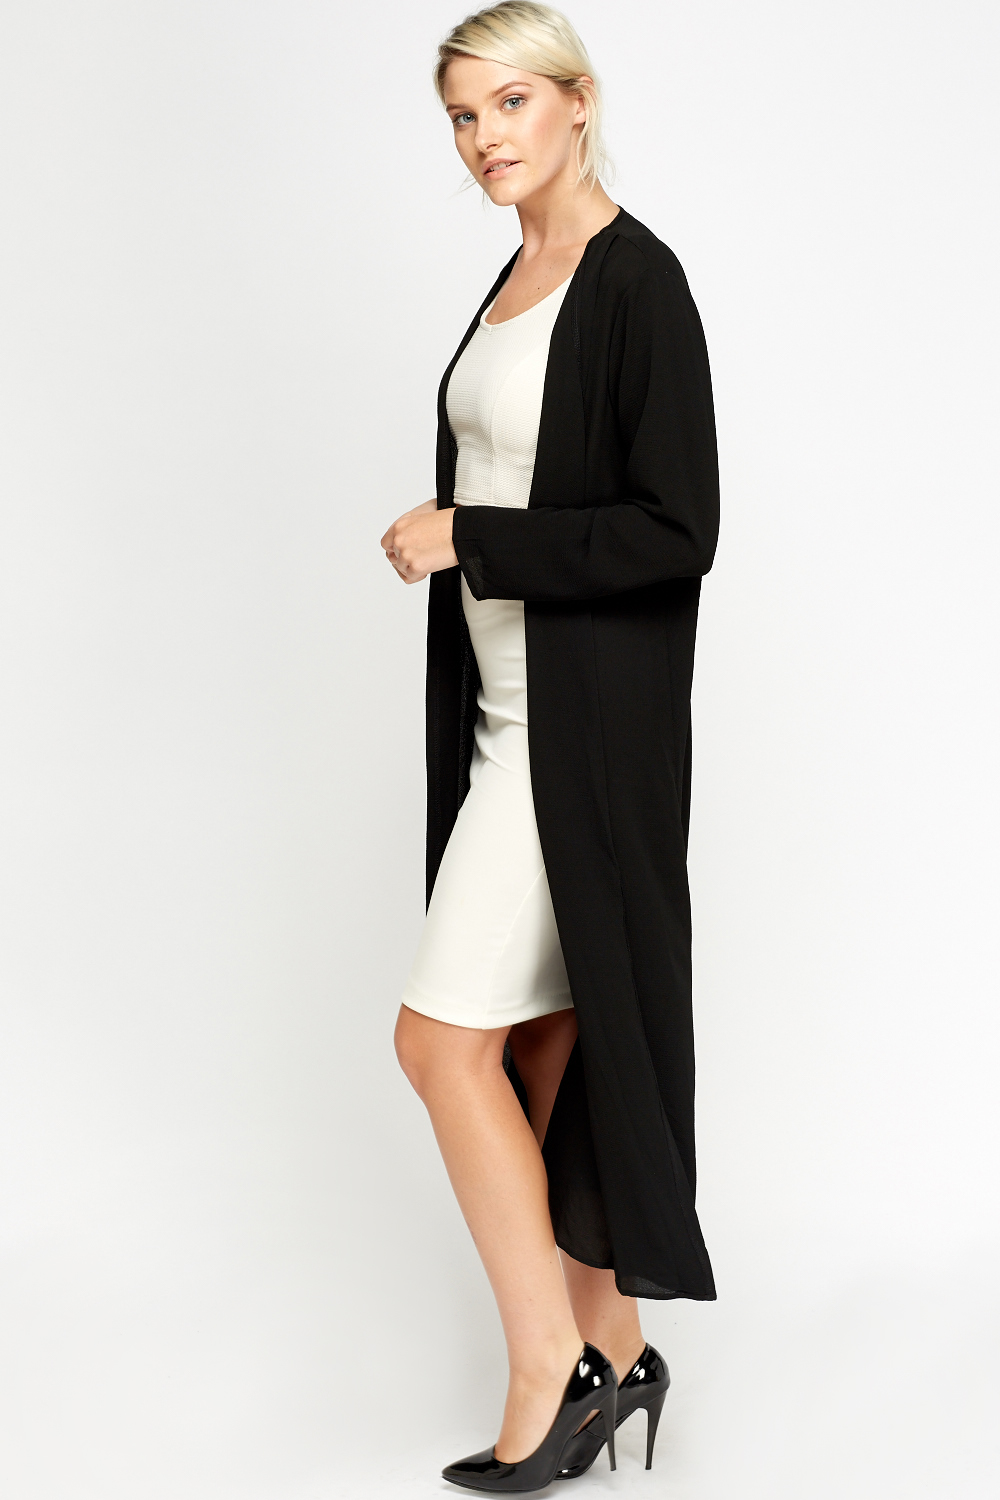 Long Line Thin Cardigan - Just £5